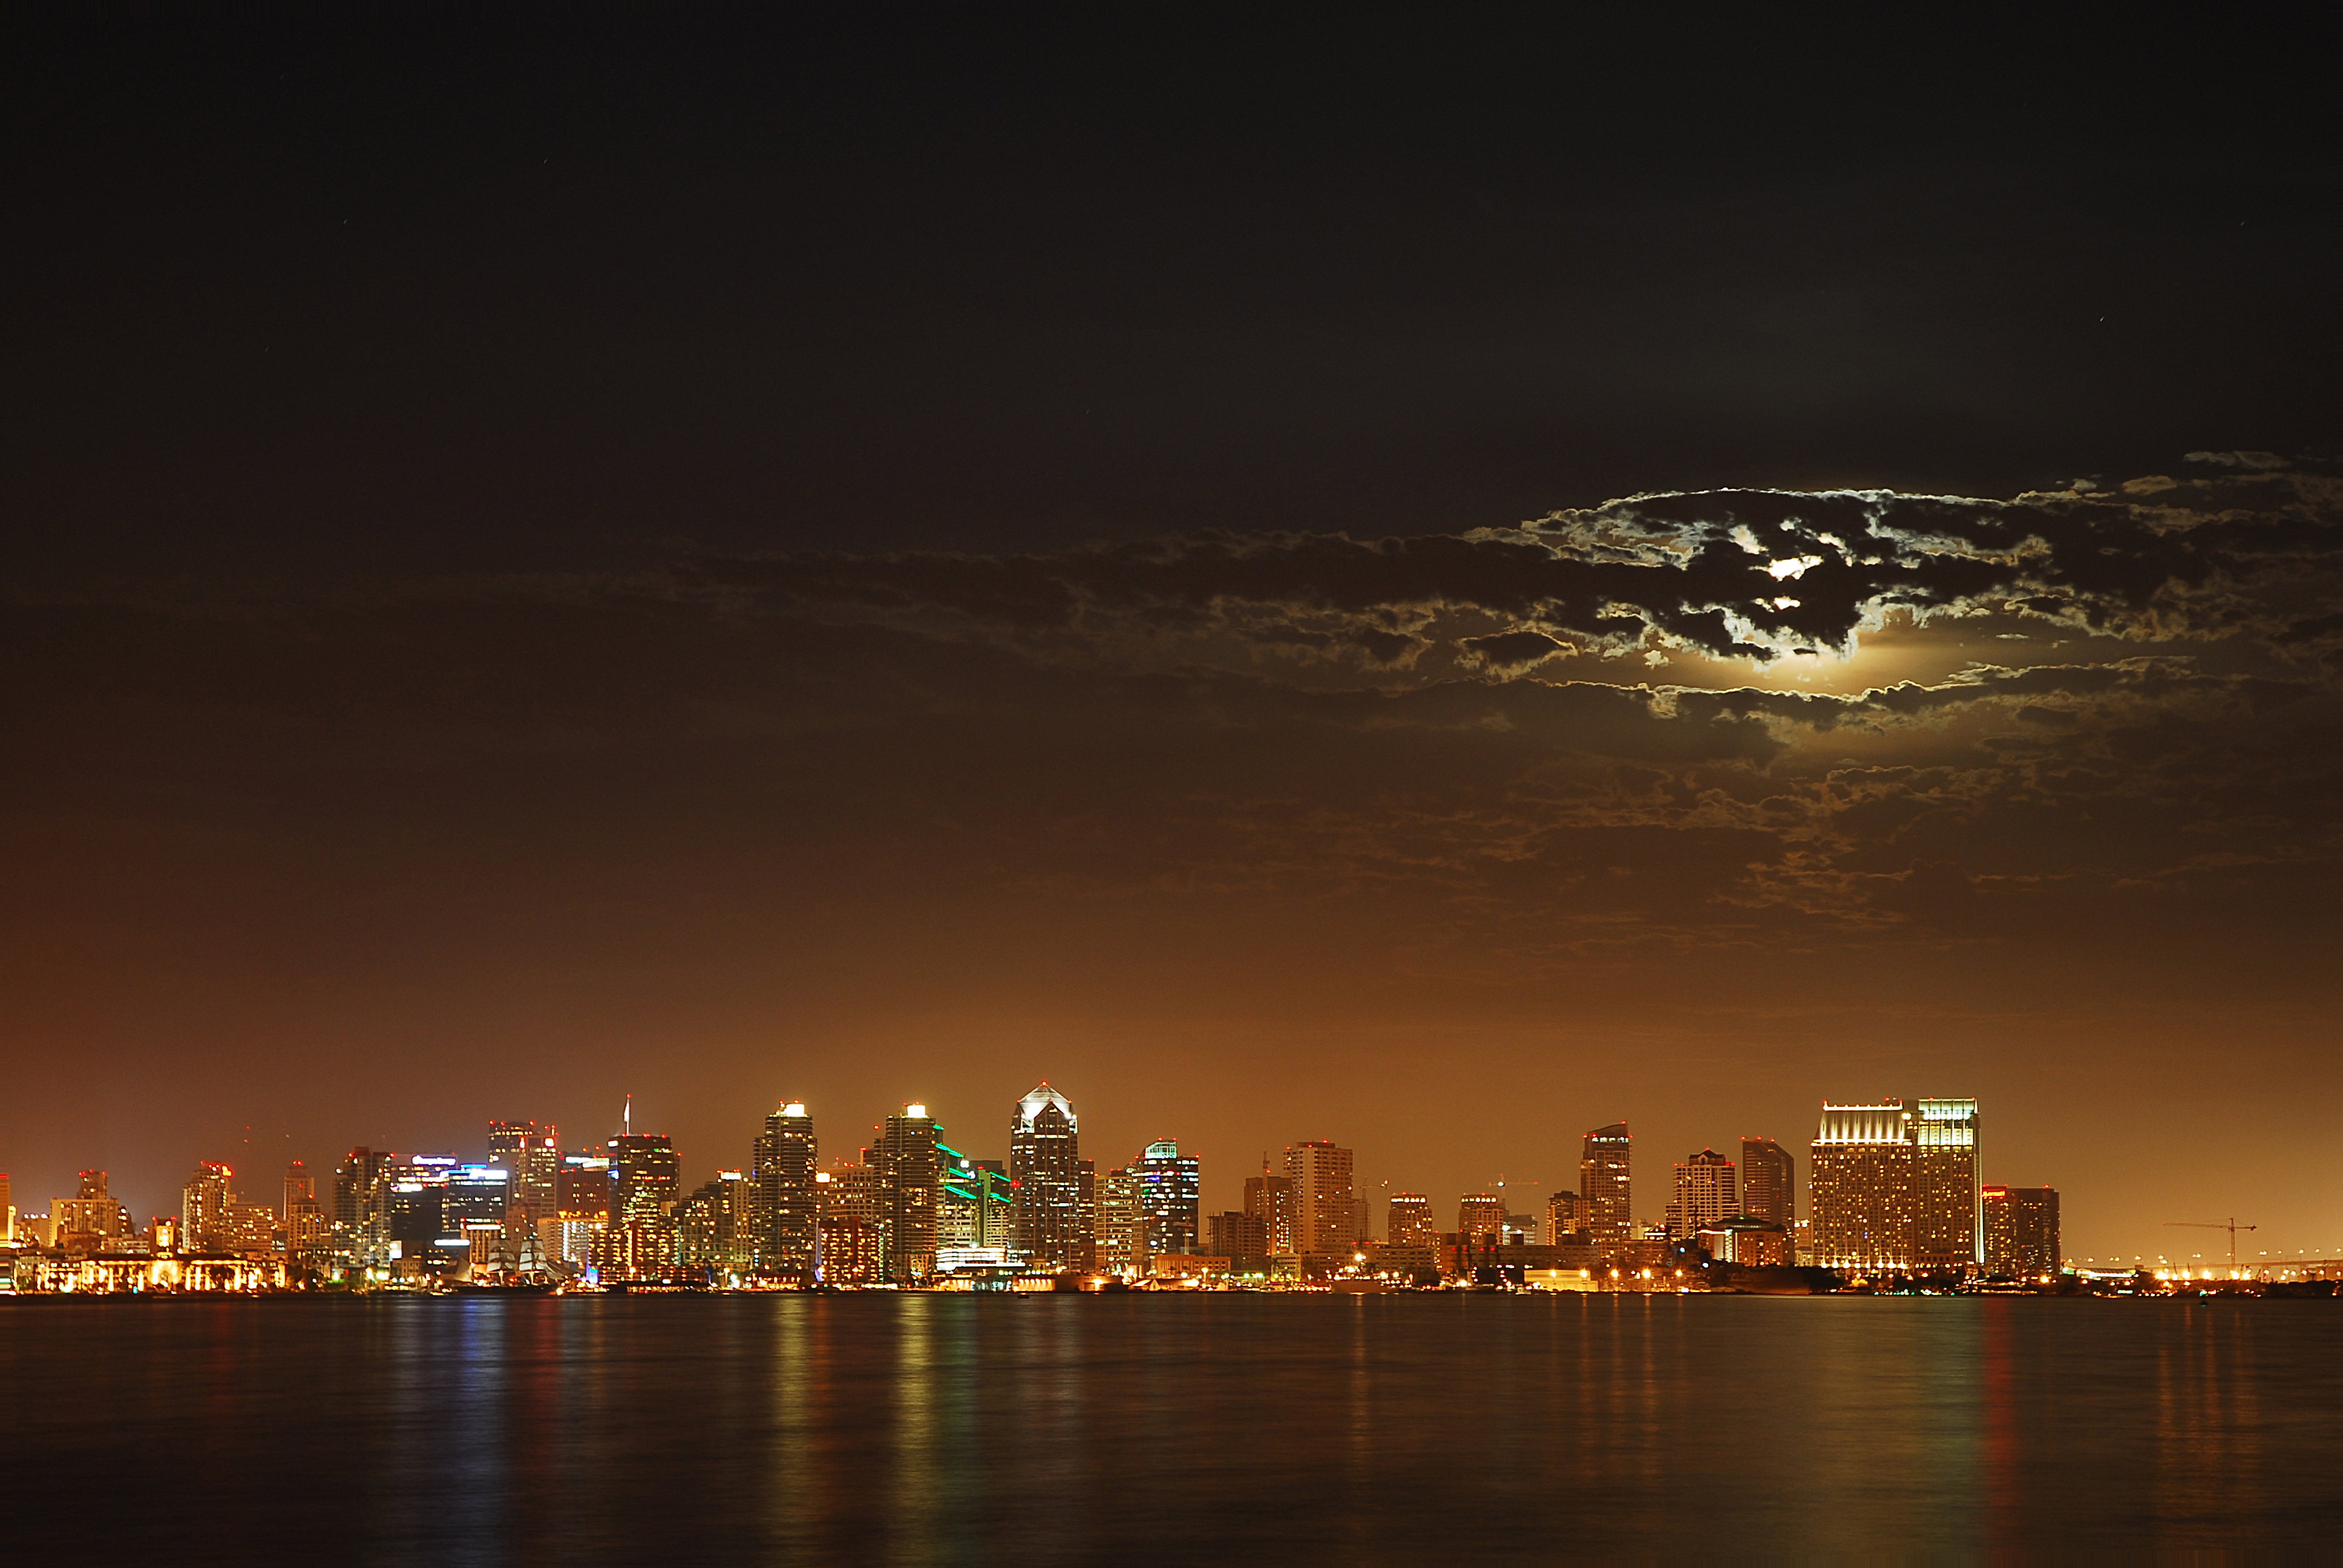 Moon peeking out of clouds over City